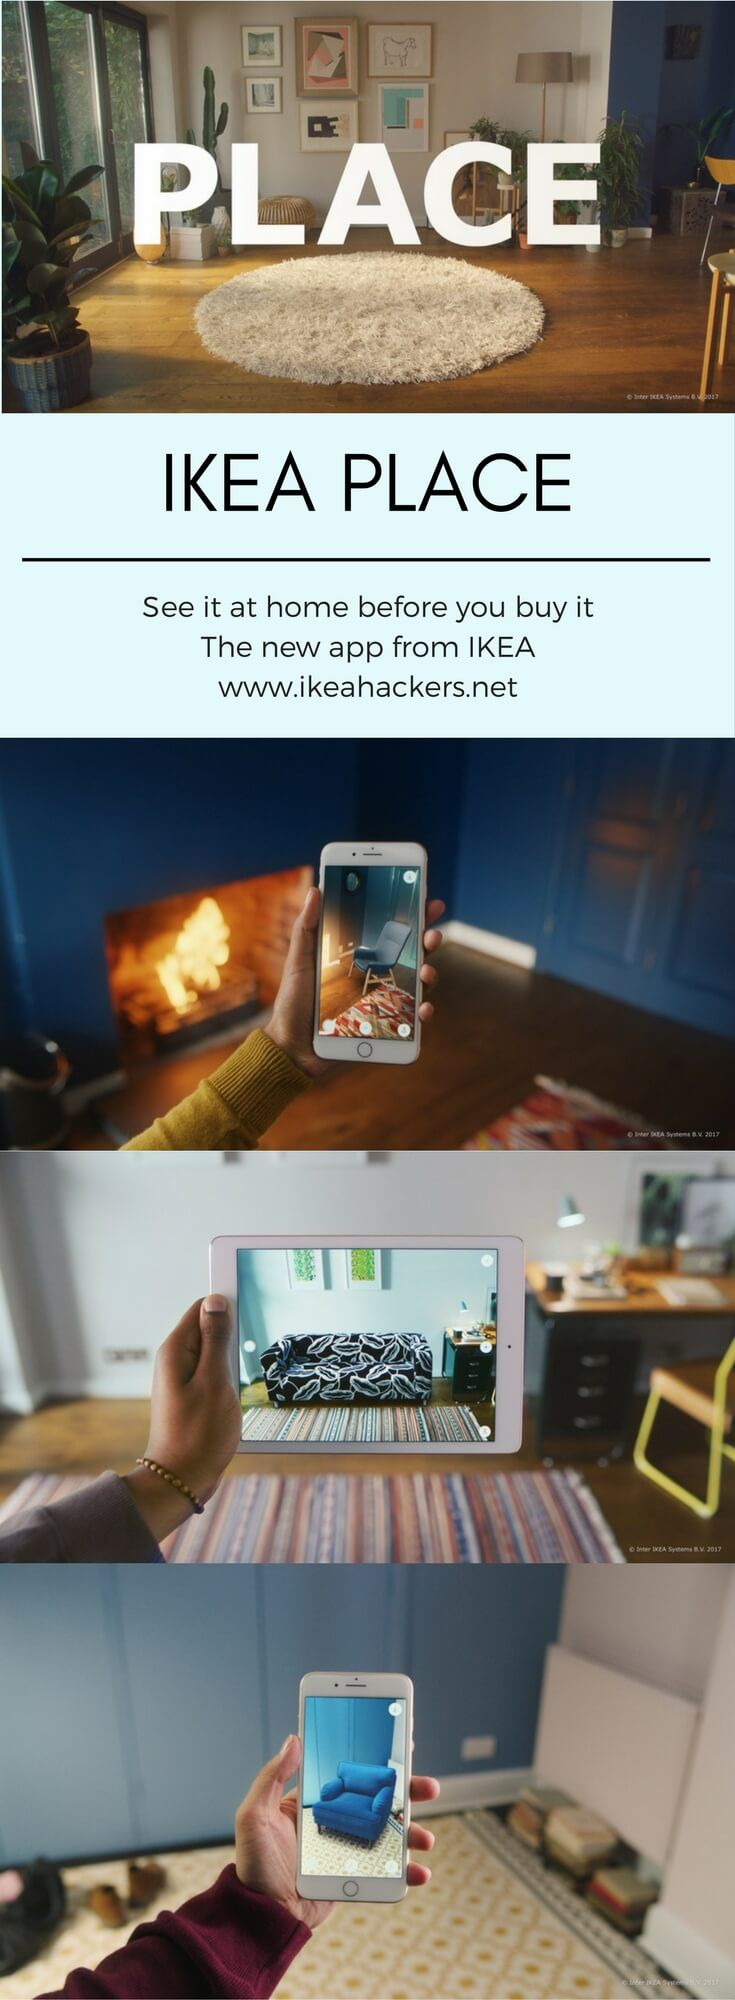 """IKEA Place lets you """"see"""" it in your home before you buy it http://www.ikeahackers.net/2017/09/ikea-place-lets-envision-home-buy.html"""